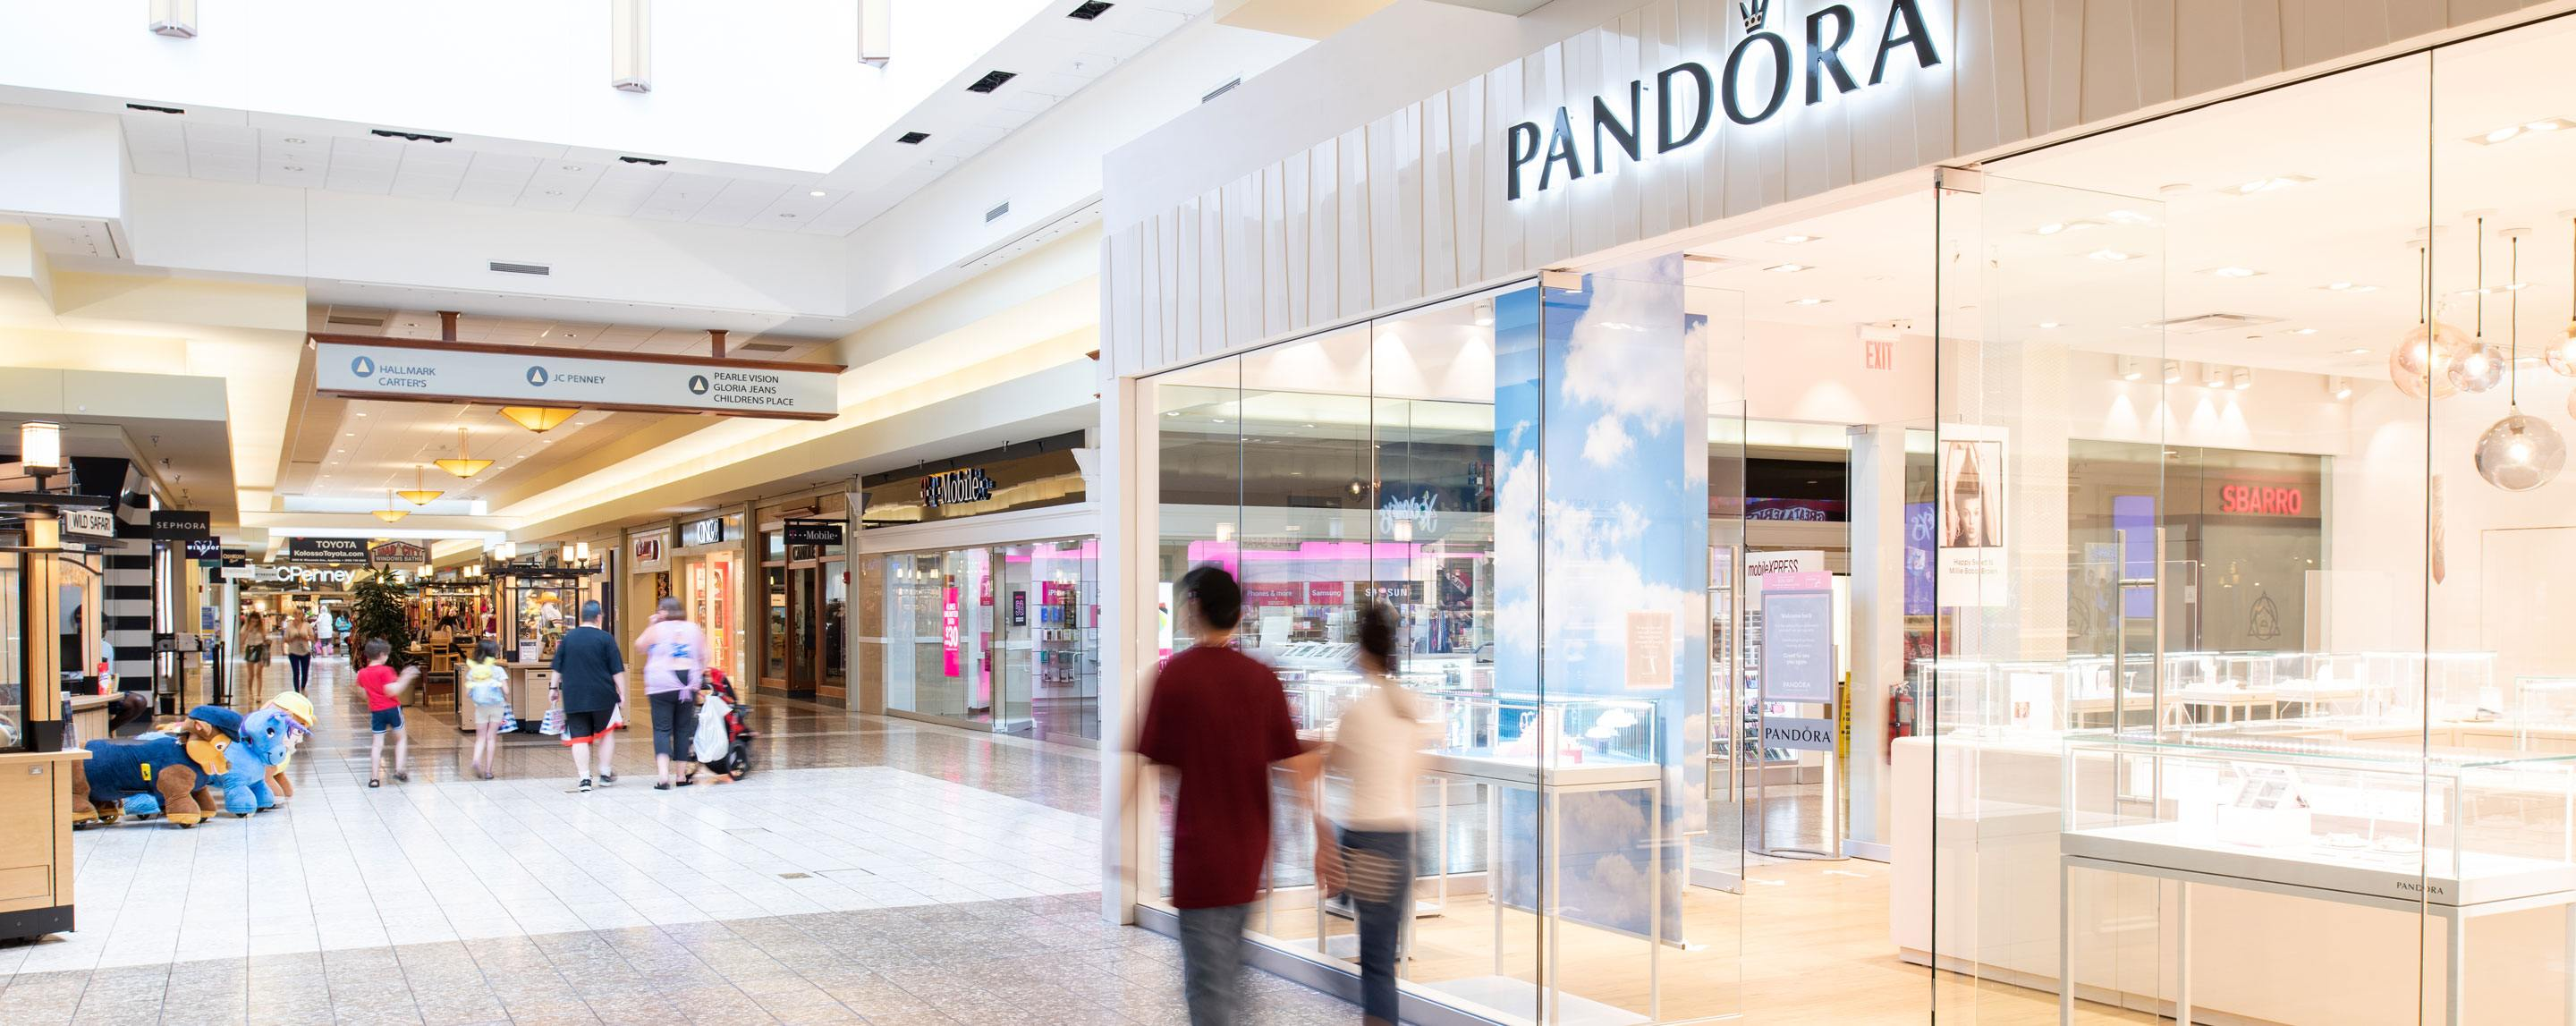 People walk down an indoor mall. Several storefronts are visible, including Pandora.